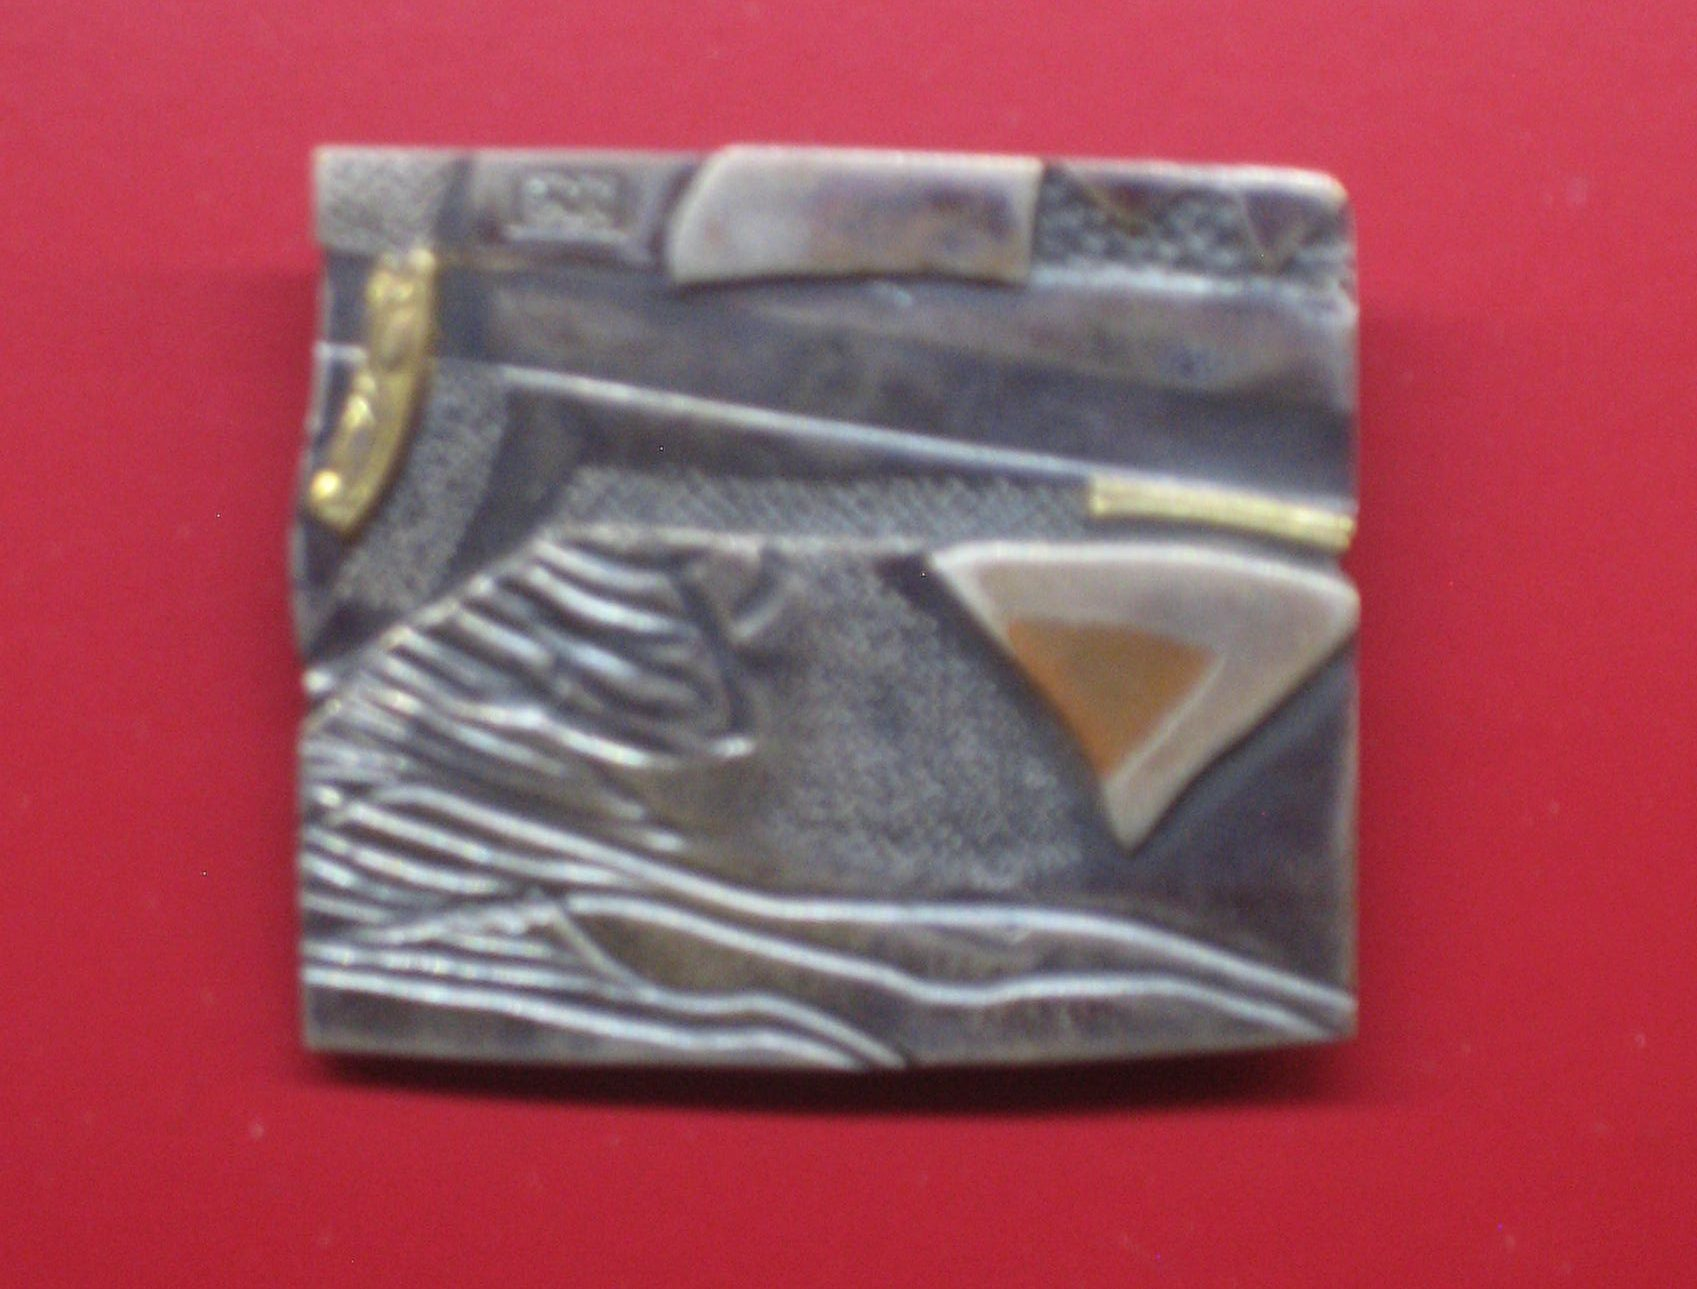 Uta Feiler, broche, 1981. Collectie Angermuseum IX 518 (S 19-95). Foto Esther Doornbusch, CC BY 4.0